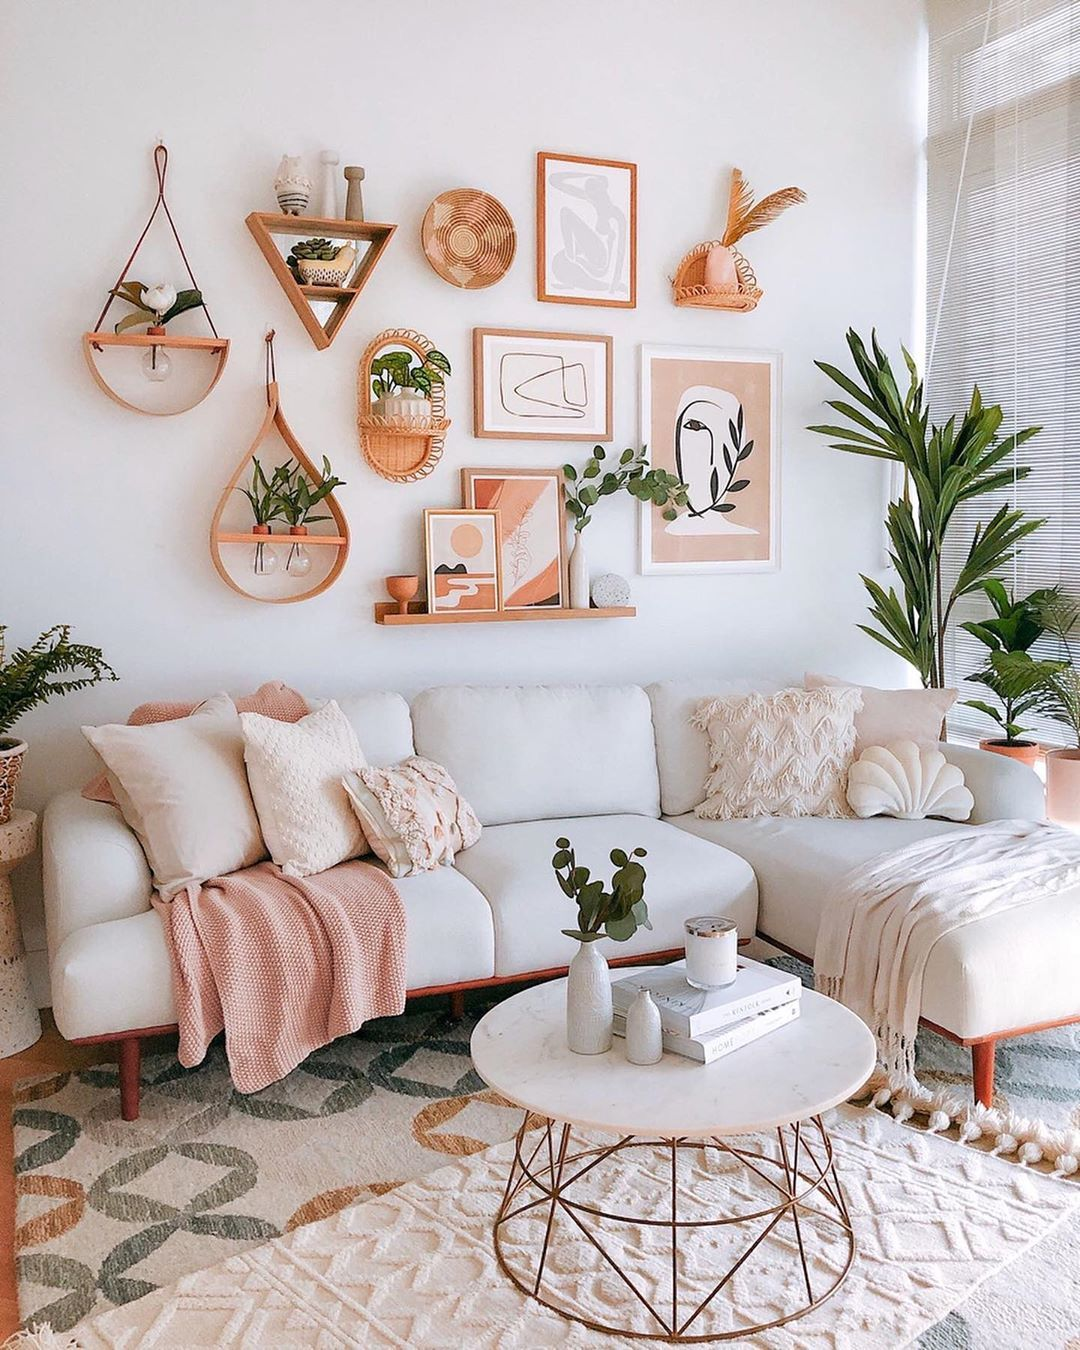 280 Curtidas 6 Comentarios Castlery Us Castleryus No Instagram What Could Be The In 2020 Living Room Decor Inspiration Room Ideas Bedroom Aesthetic Room Decor